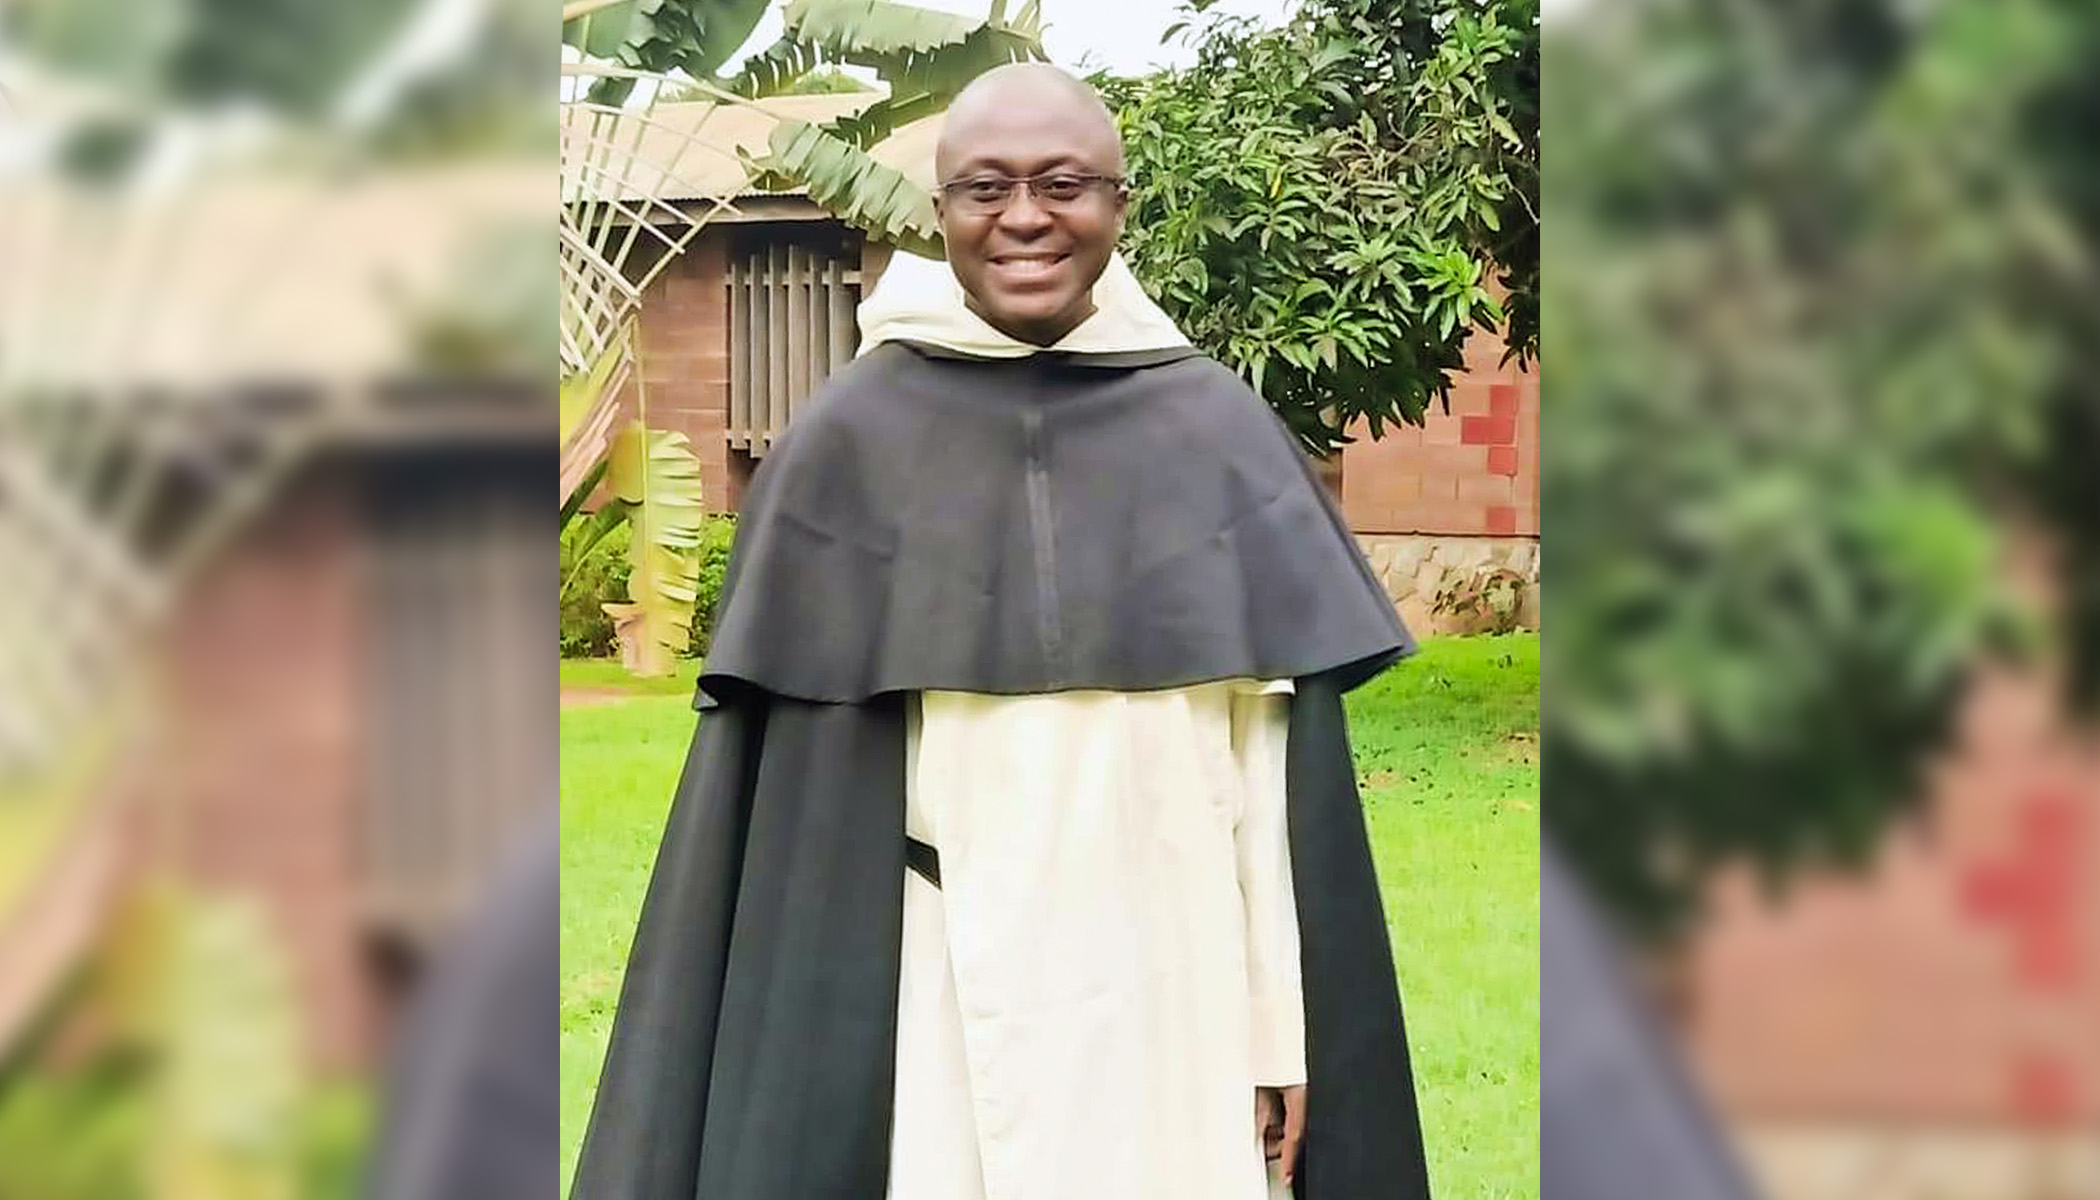 Brother Modestus Ngwu, OP, Prior Provincial of the Province of St. Joseph the Worker, Nigeria and Ghana held at the Priory of St. Thomas Aquinas in Ibadan, Nigeria.